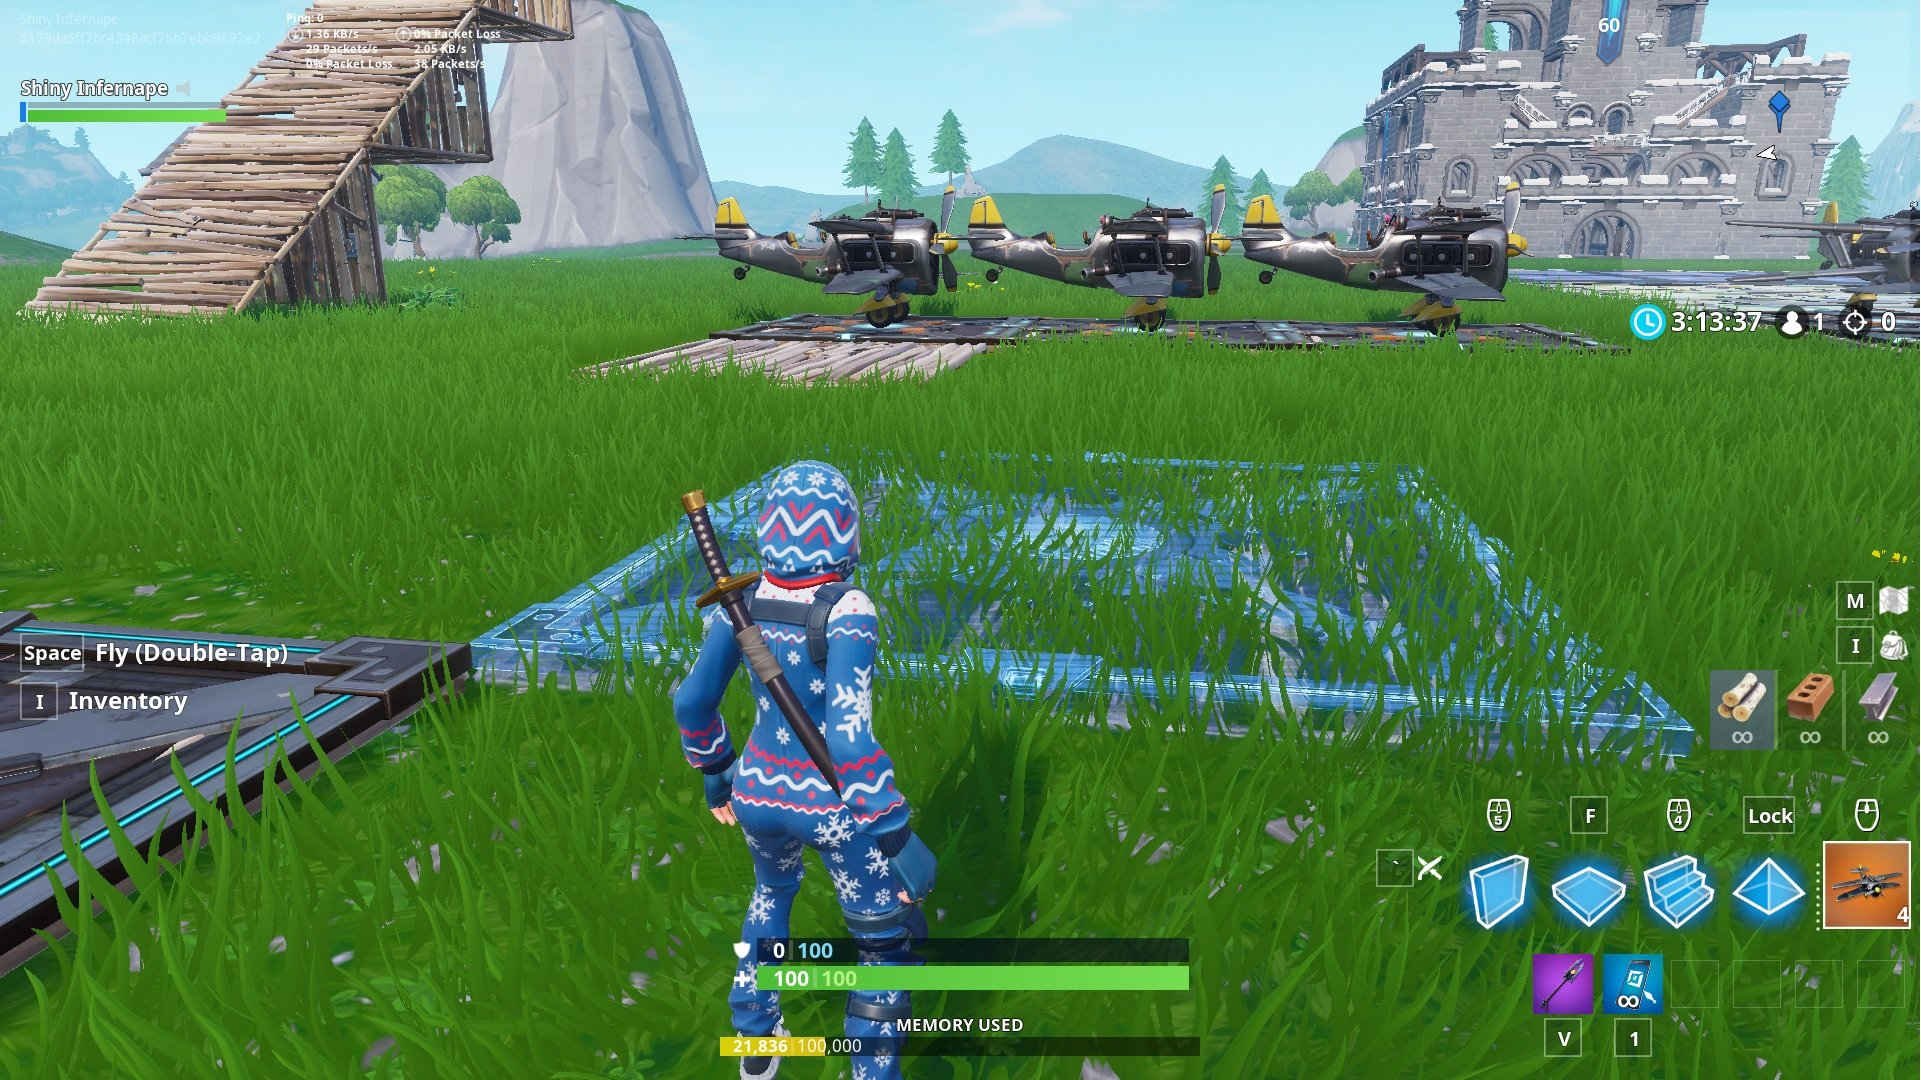 how to place devices in Fortnite Creative Mode